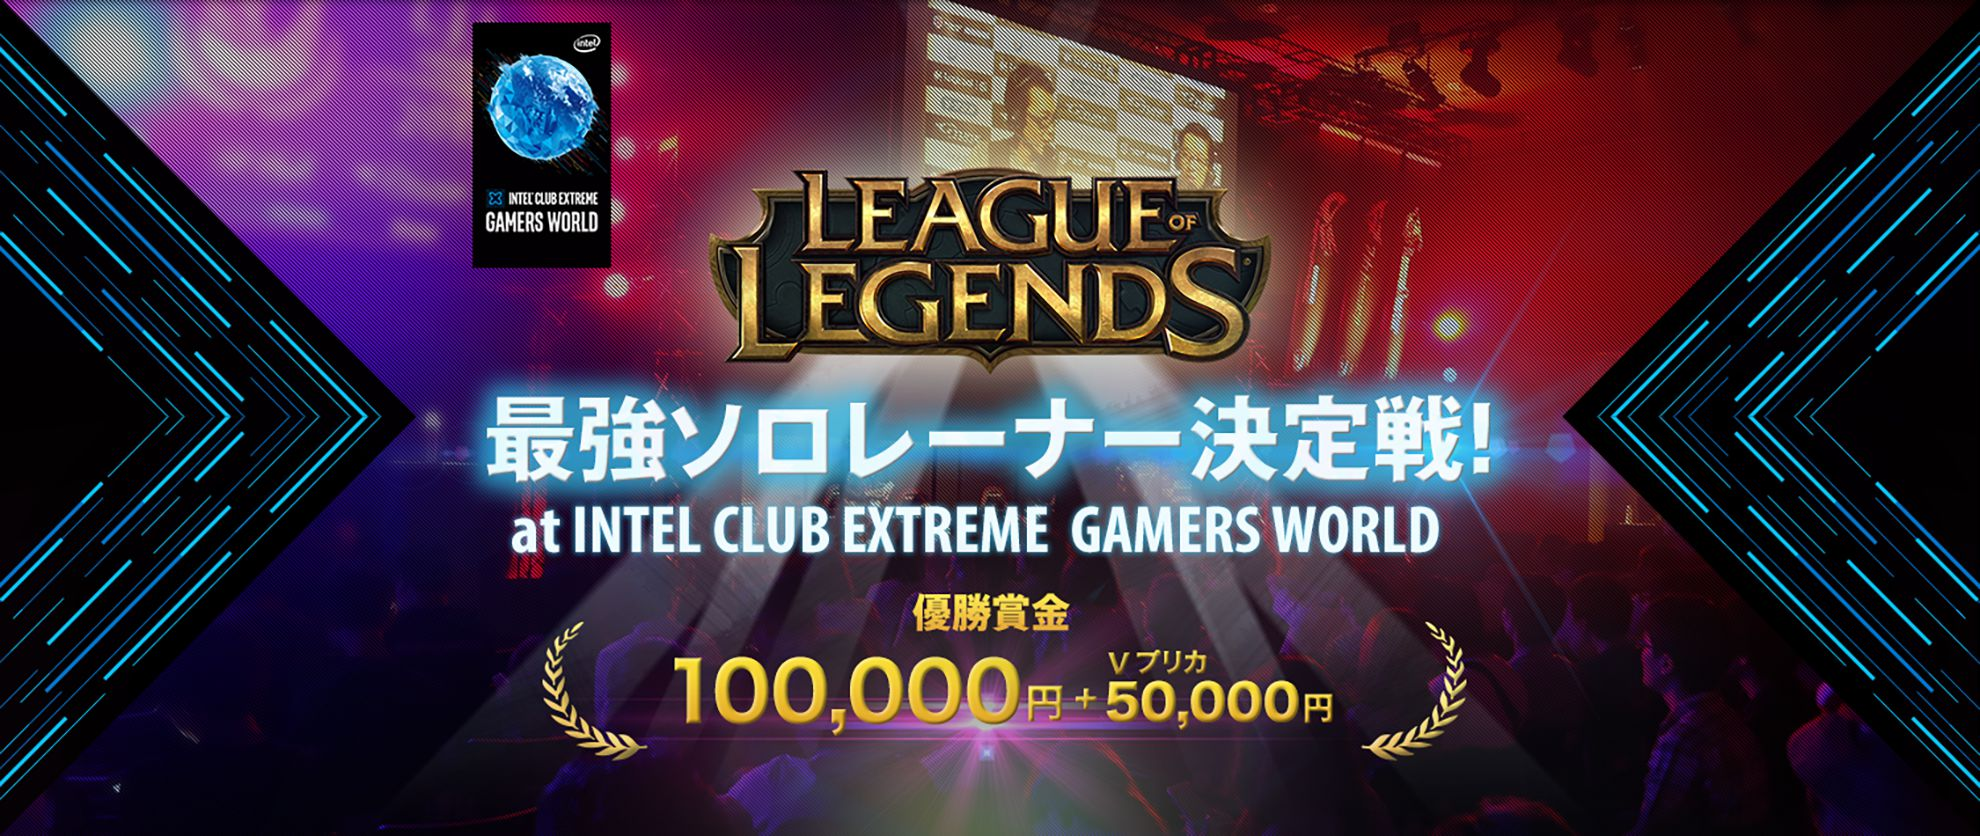 Intel® Club Extreme GAMERS WORLD